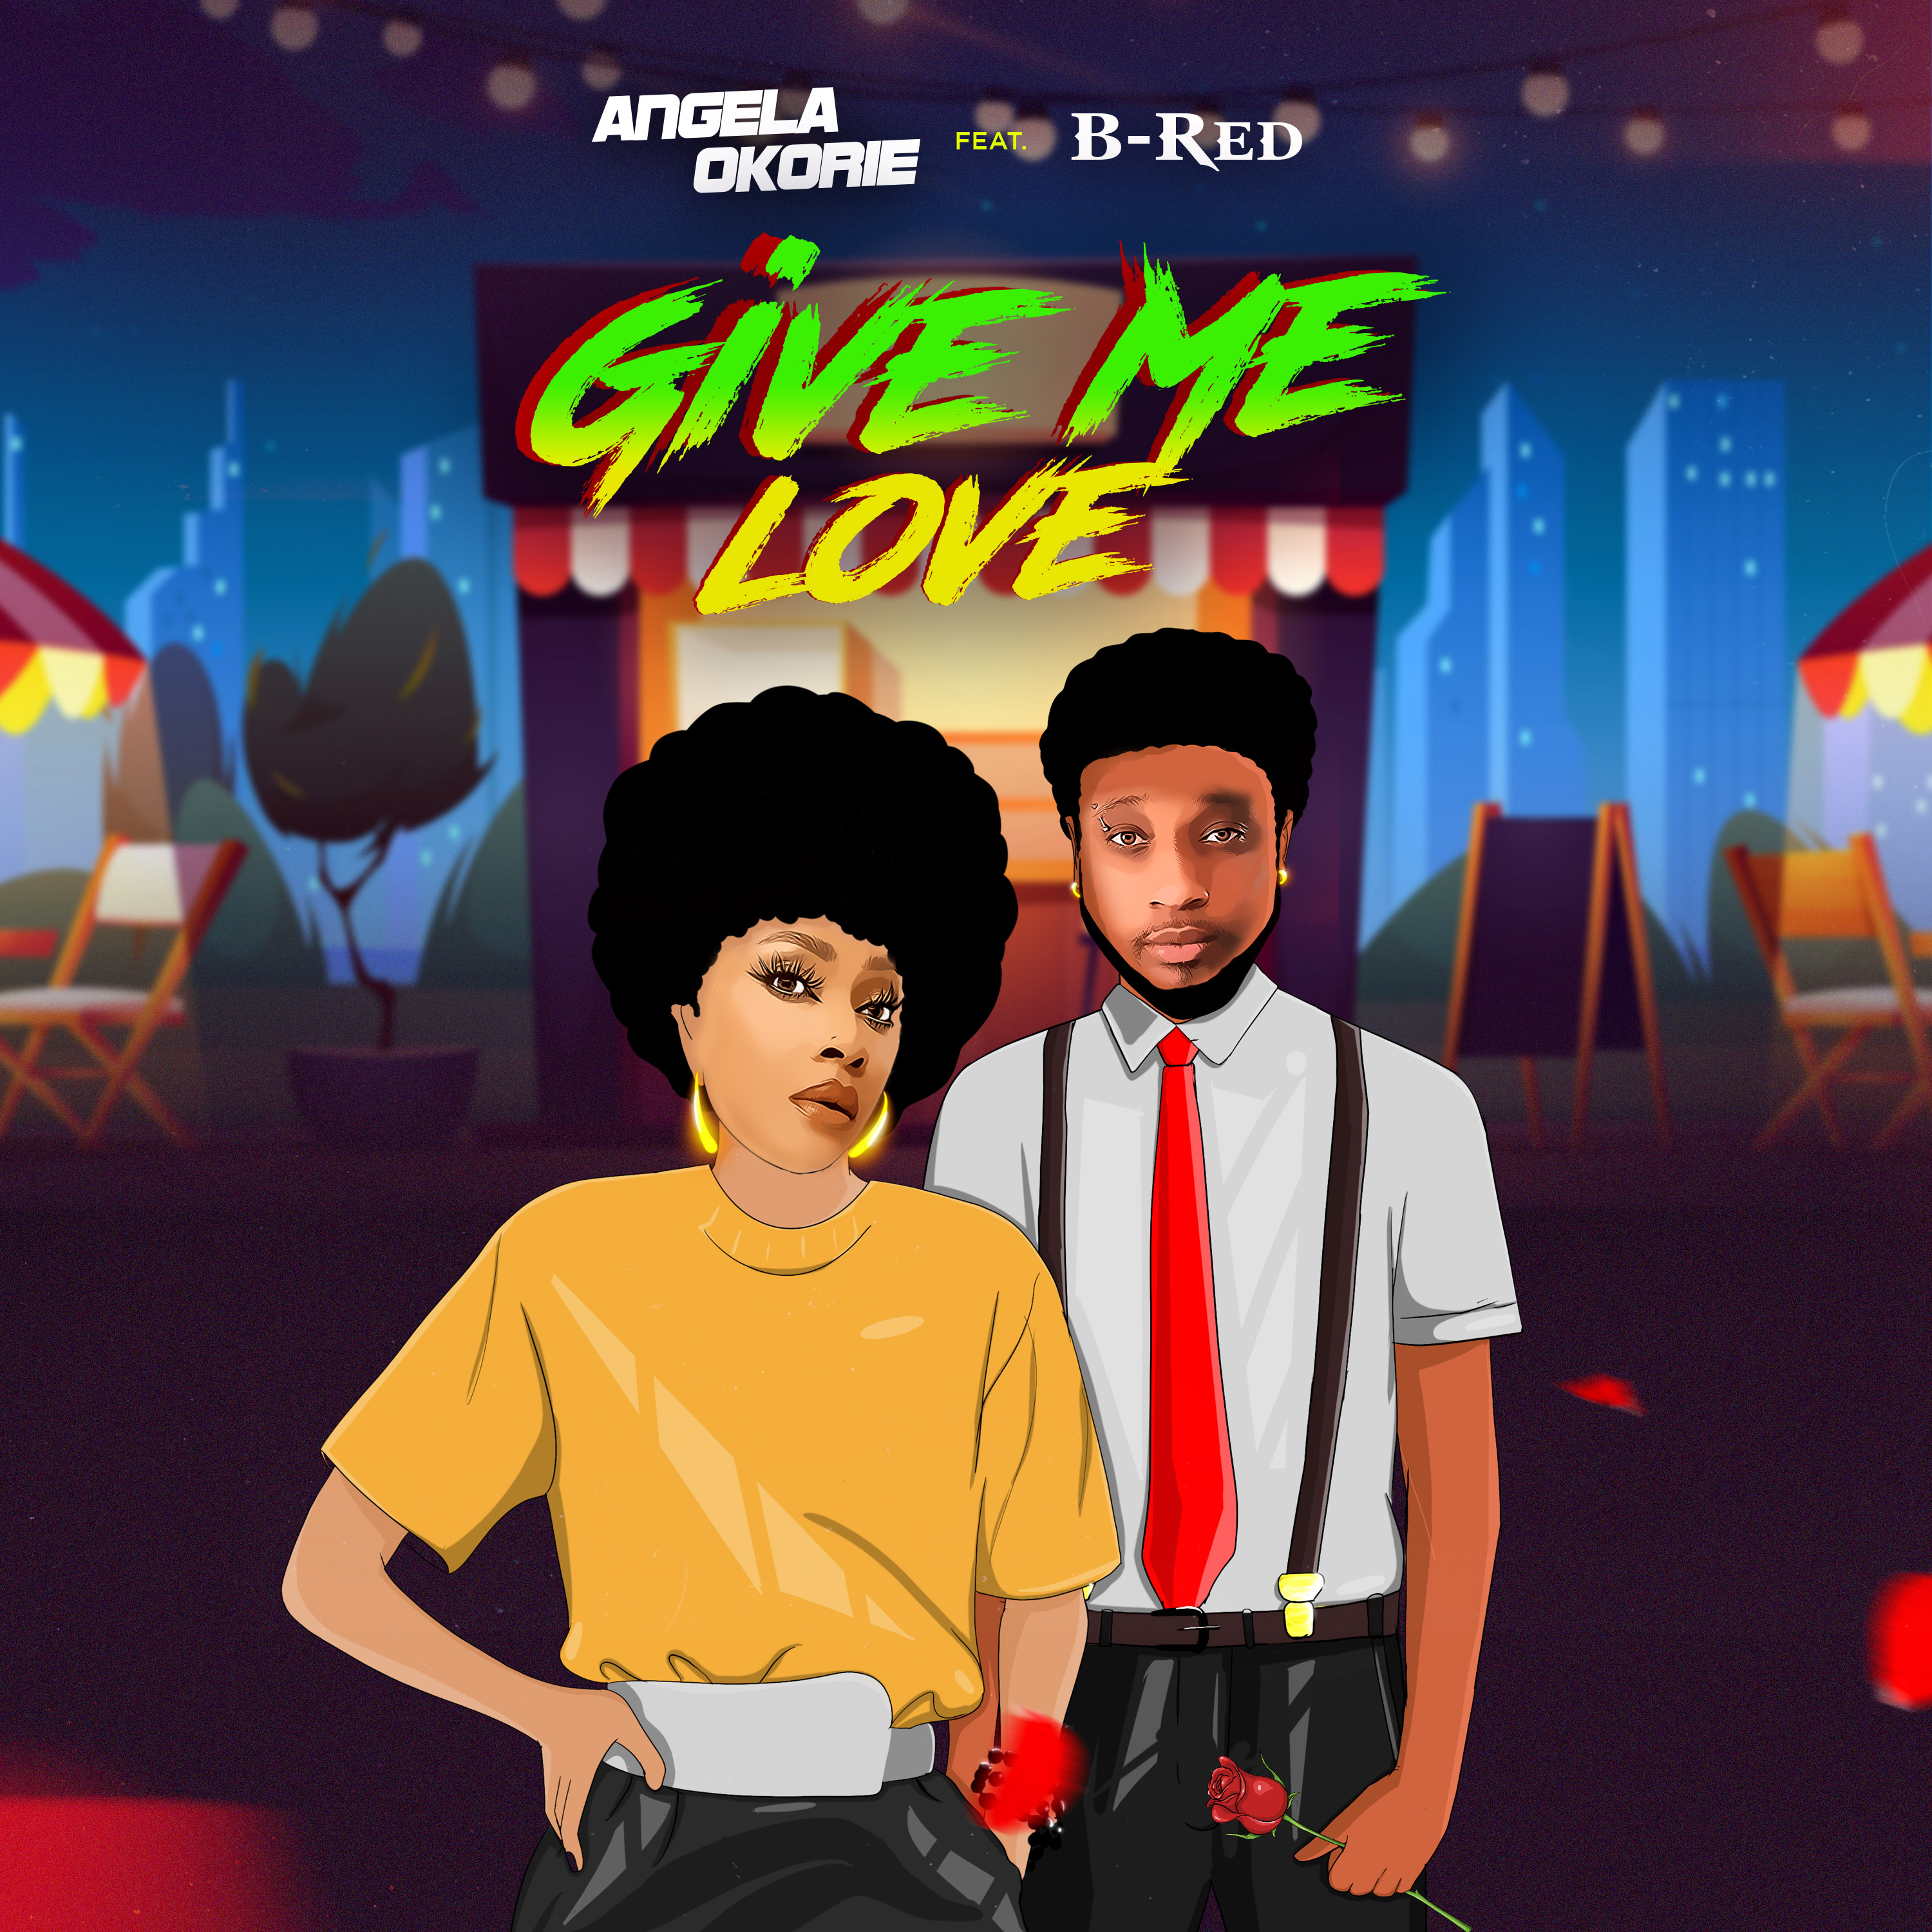 """ANGELA OKORIE DUETS WITH B-RED ON NEW SINGLE TITLED """"GIVE ME LOVE"""""""